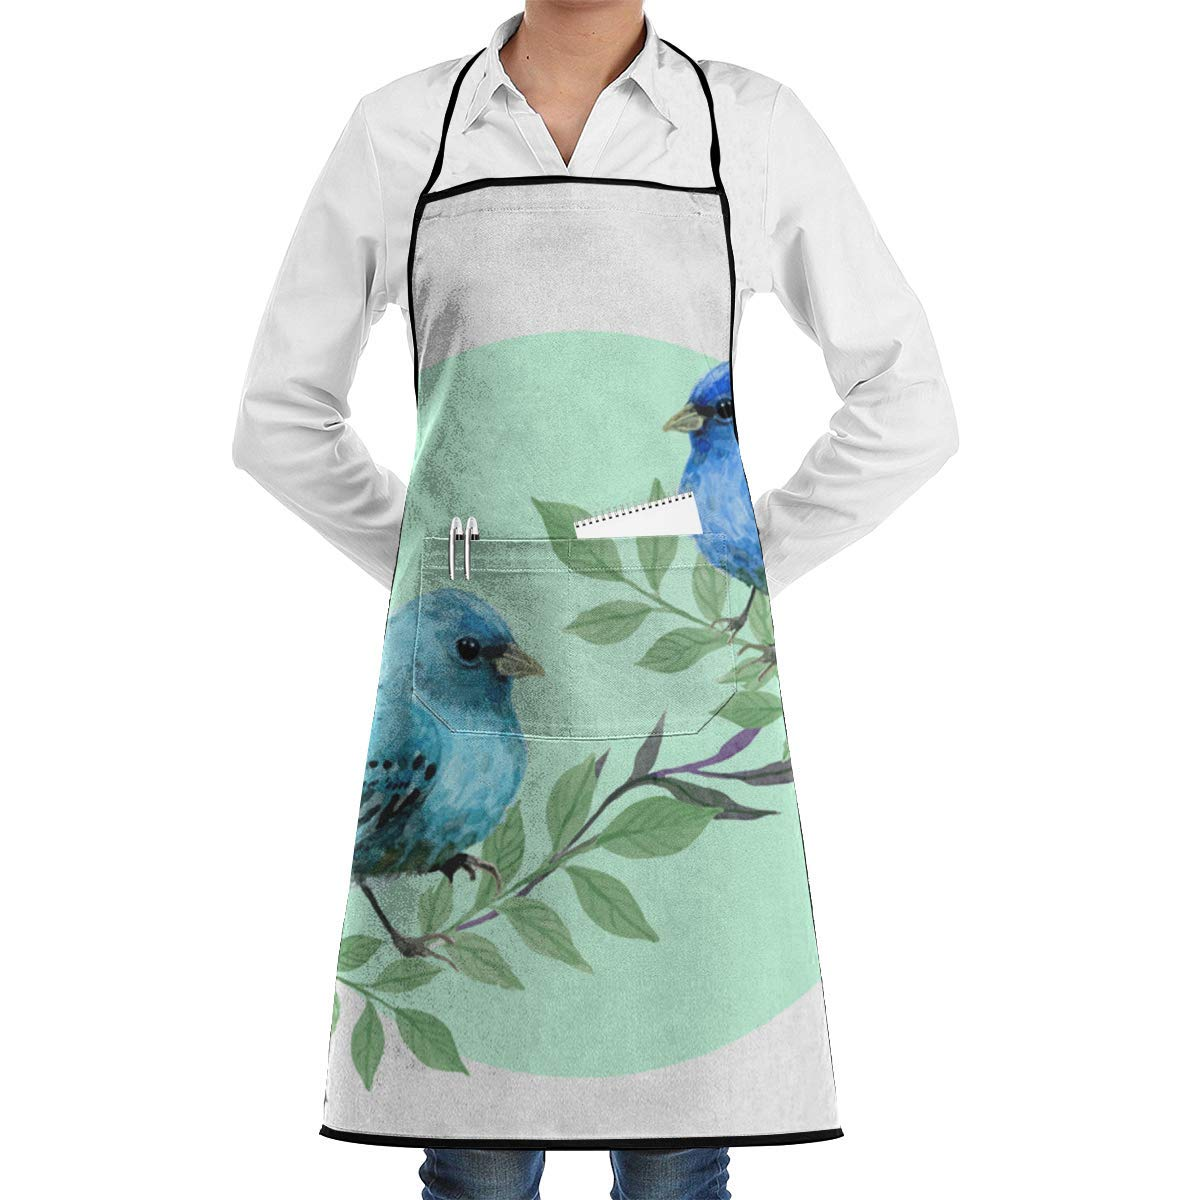 Cute Watercolor Blue Bird Aprons Bib for Mens Womens Hairstylist String Adjustable Adult Kitchen Waiter Aprons with Pockets